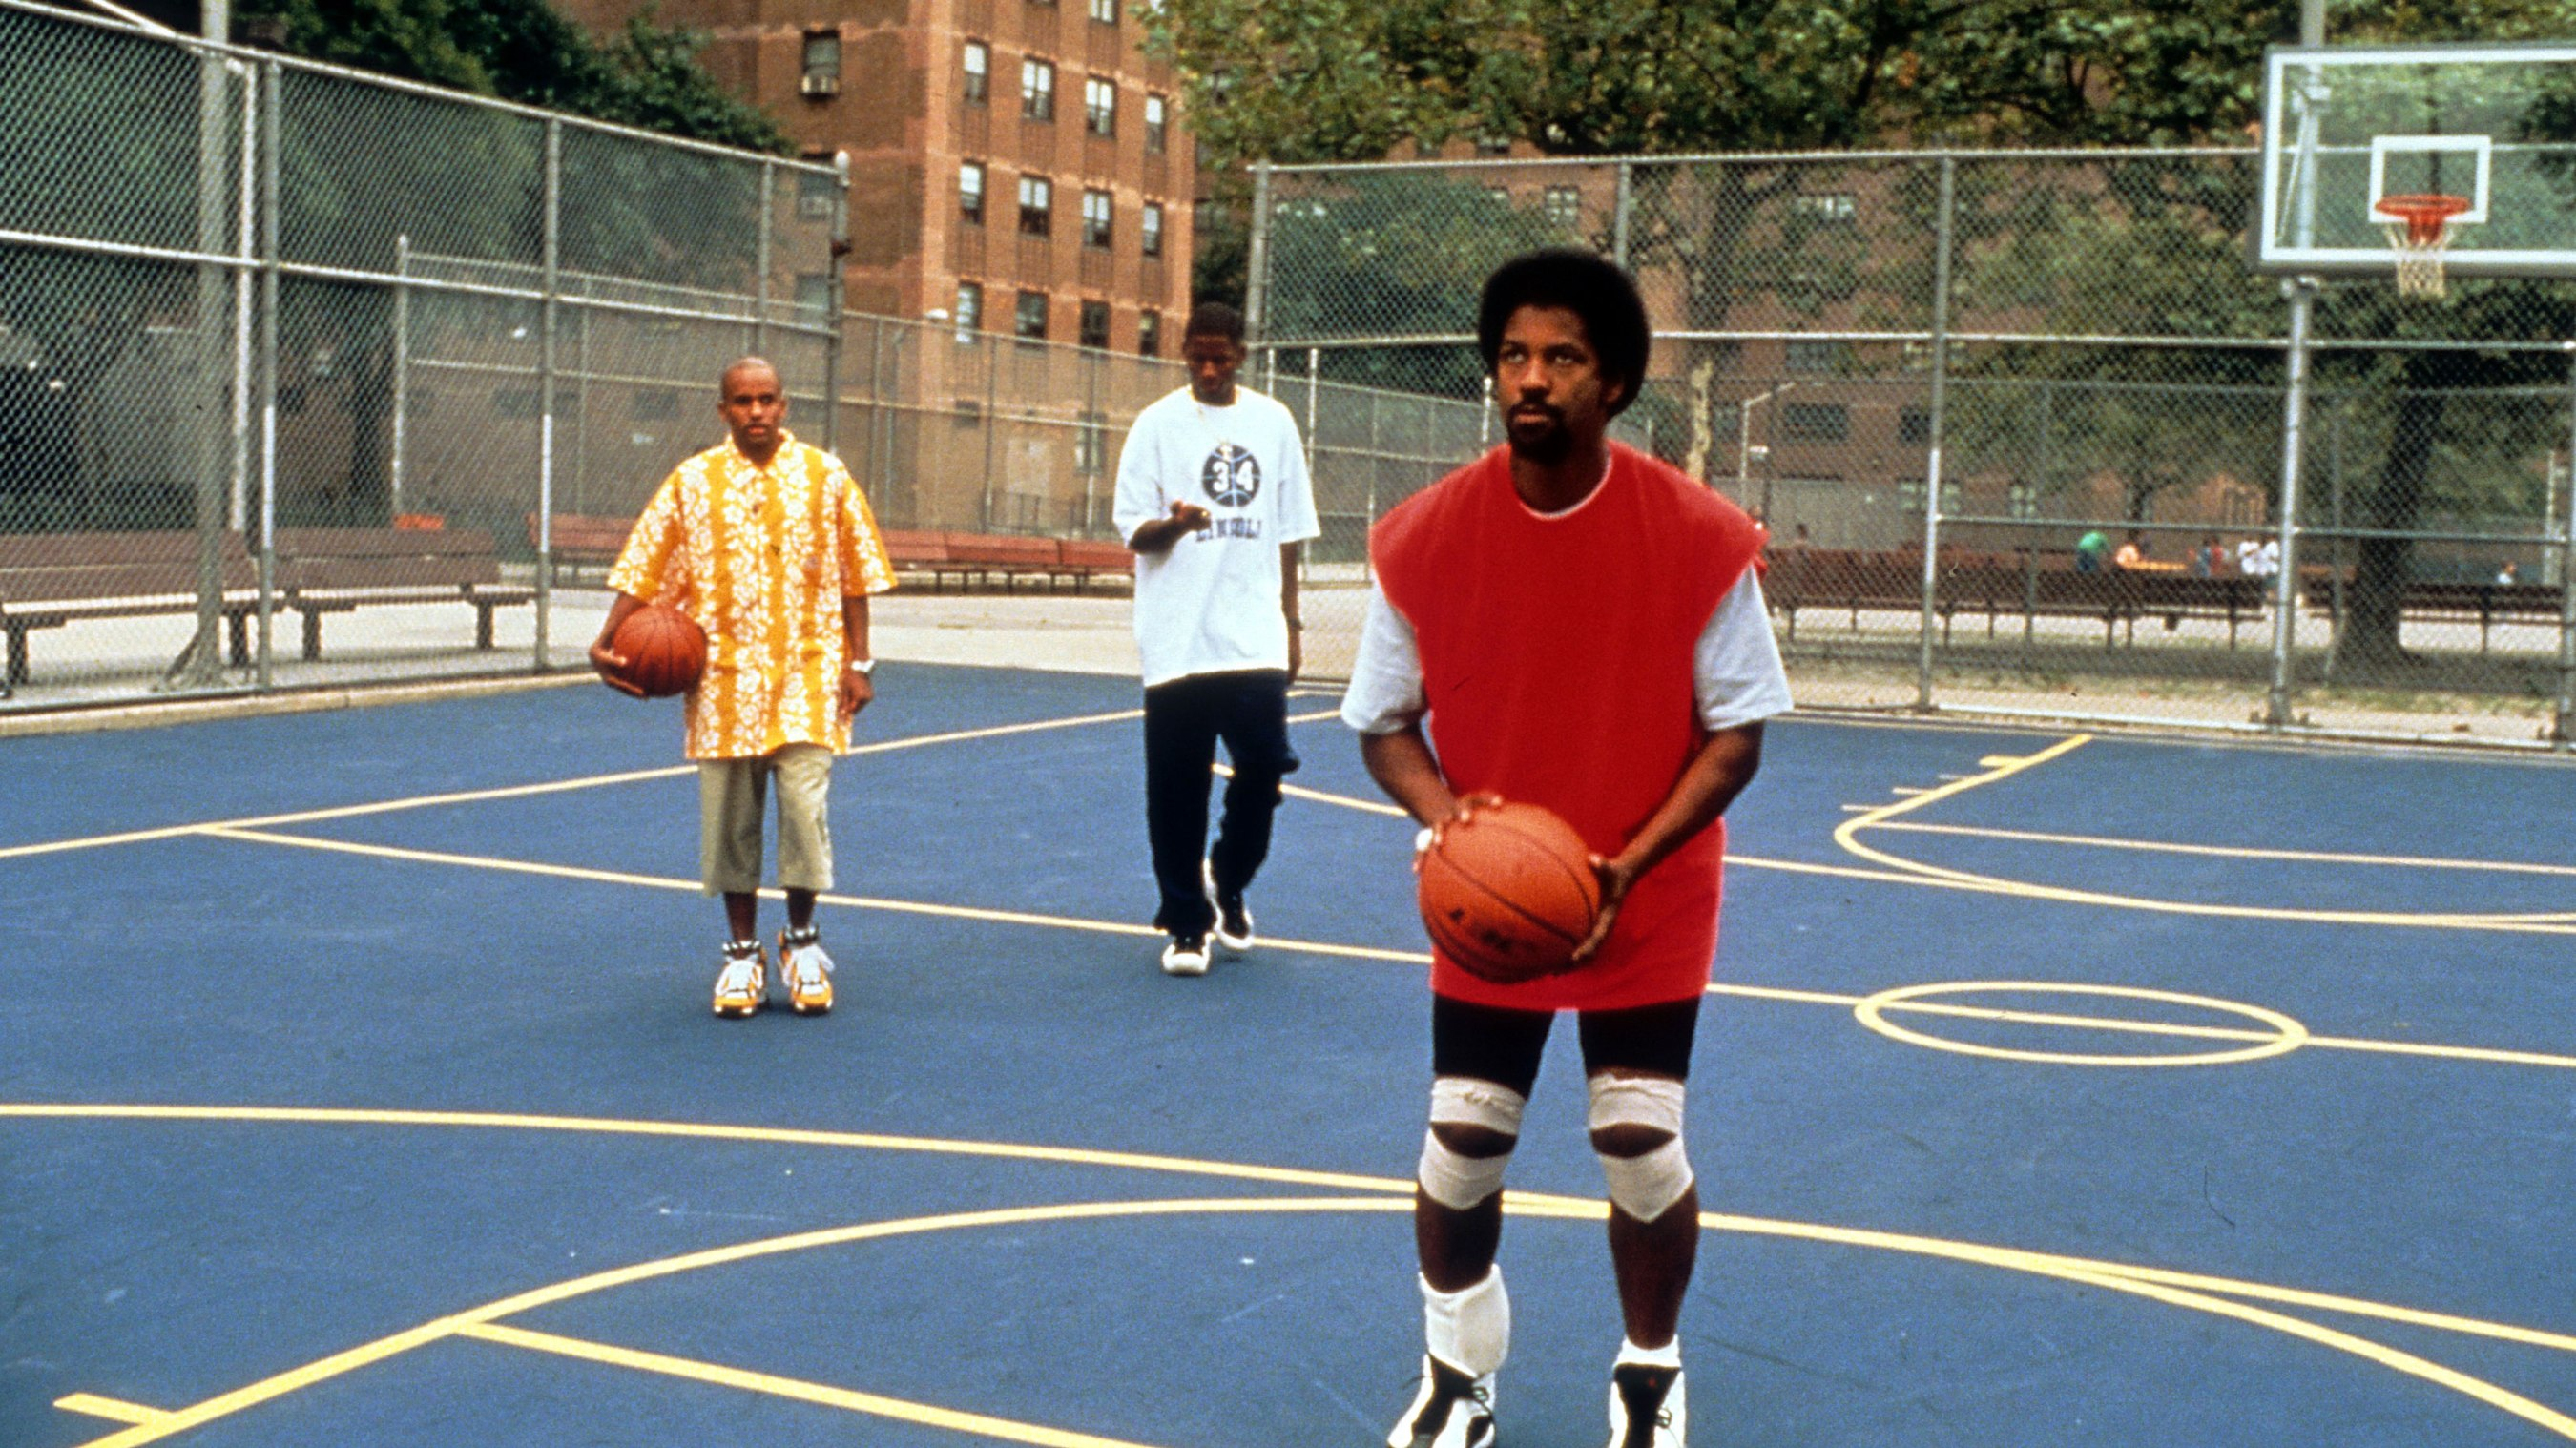 deaa99159b203e The  He Got Game  Air Jordan 13s starred in Spike Lee s film — and became  one of the most famous ever